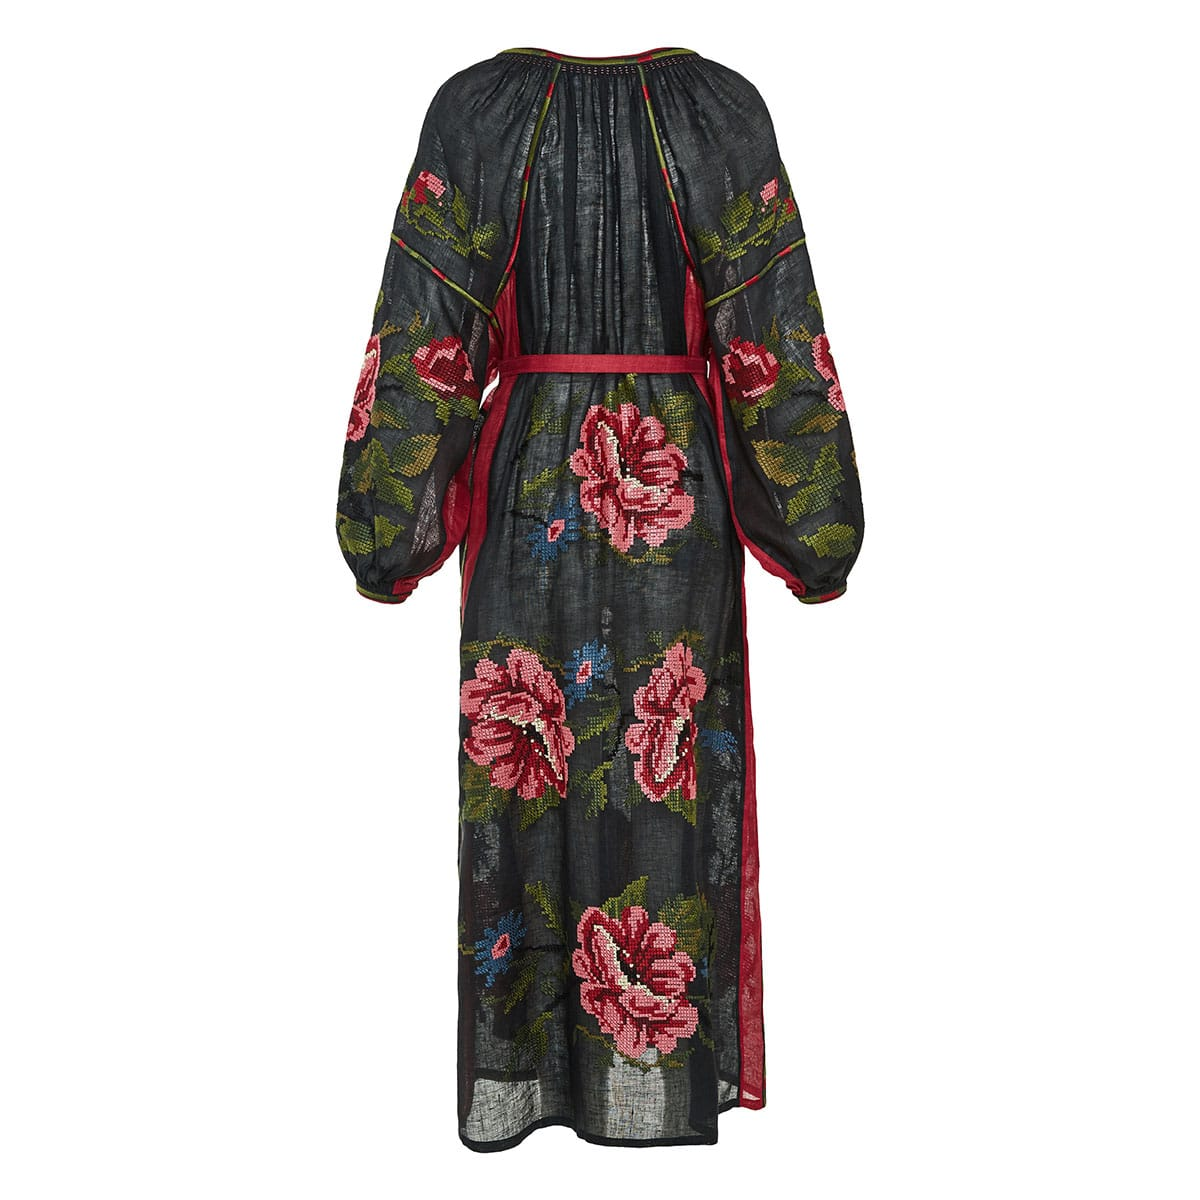 Gypsy Queen rose-embroidered linen dress